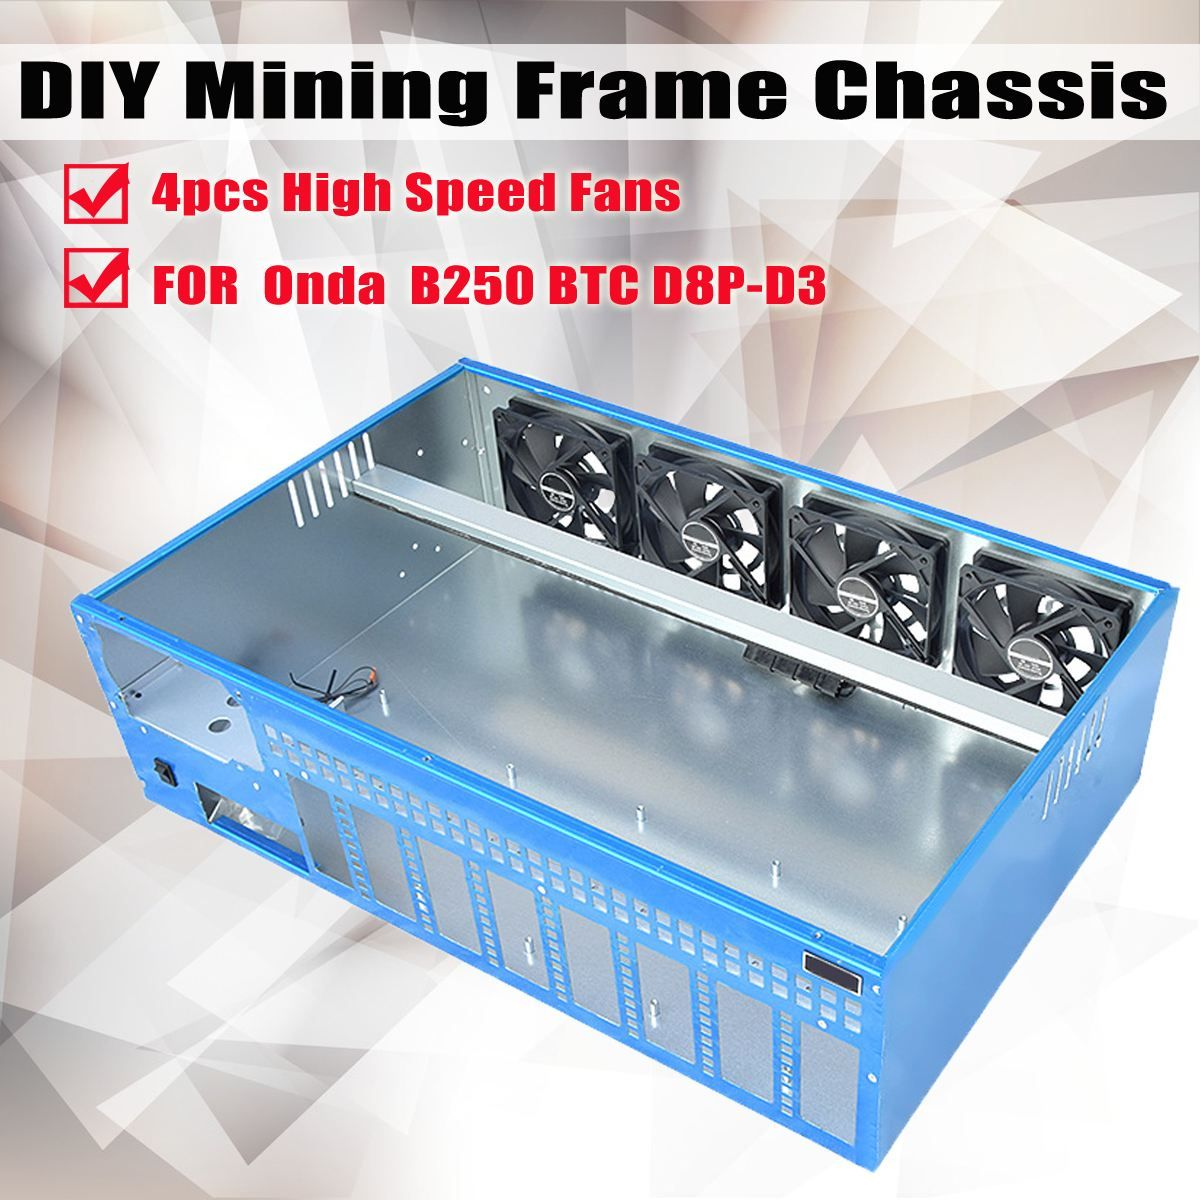 8GPU DIY Mining Frame Chassis PC Case Computer Case With 4 fans For Onda B250 BTC D8P-D3 Motherboard Computer Parts